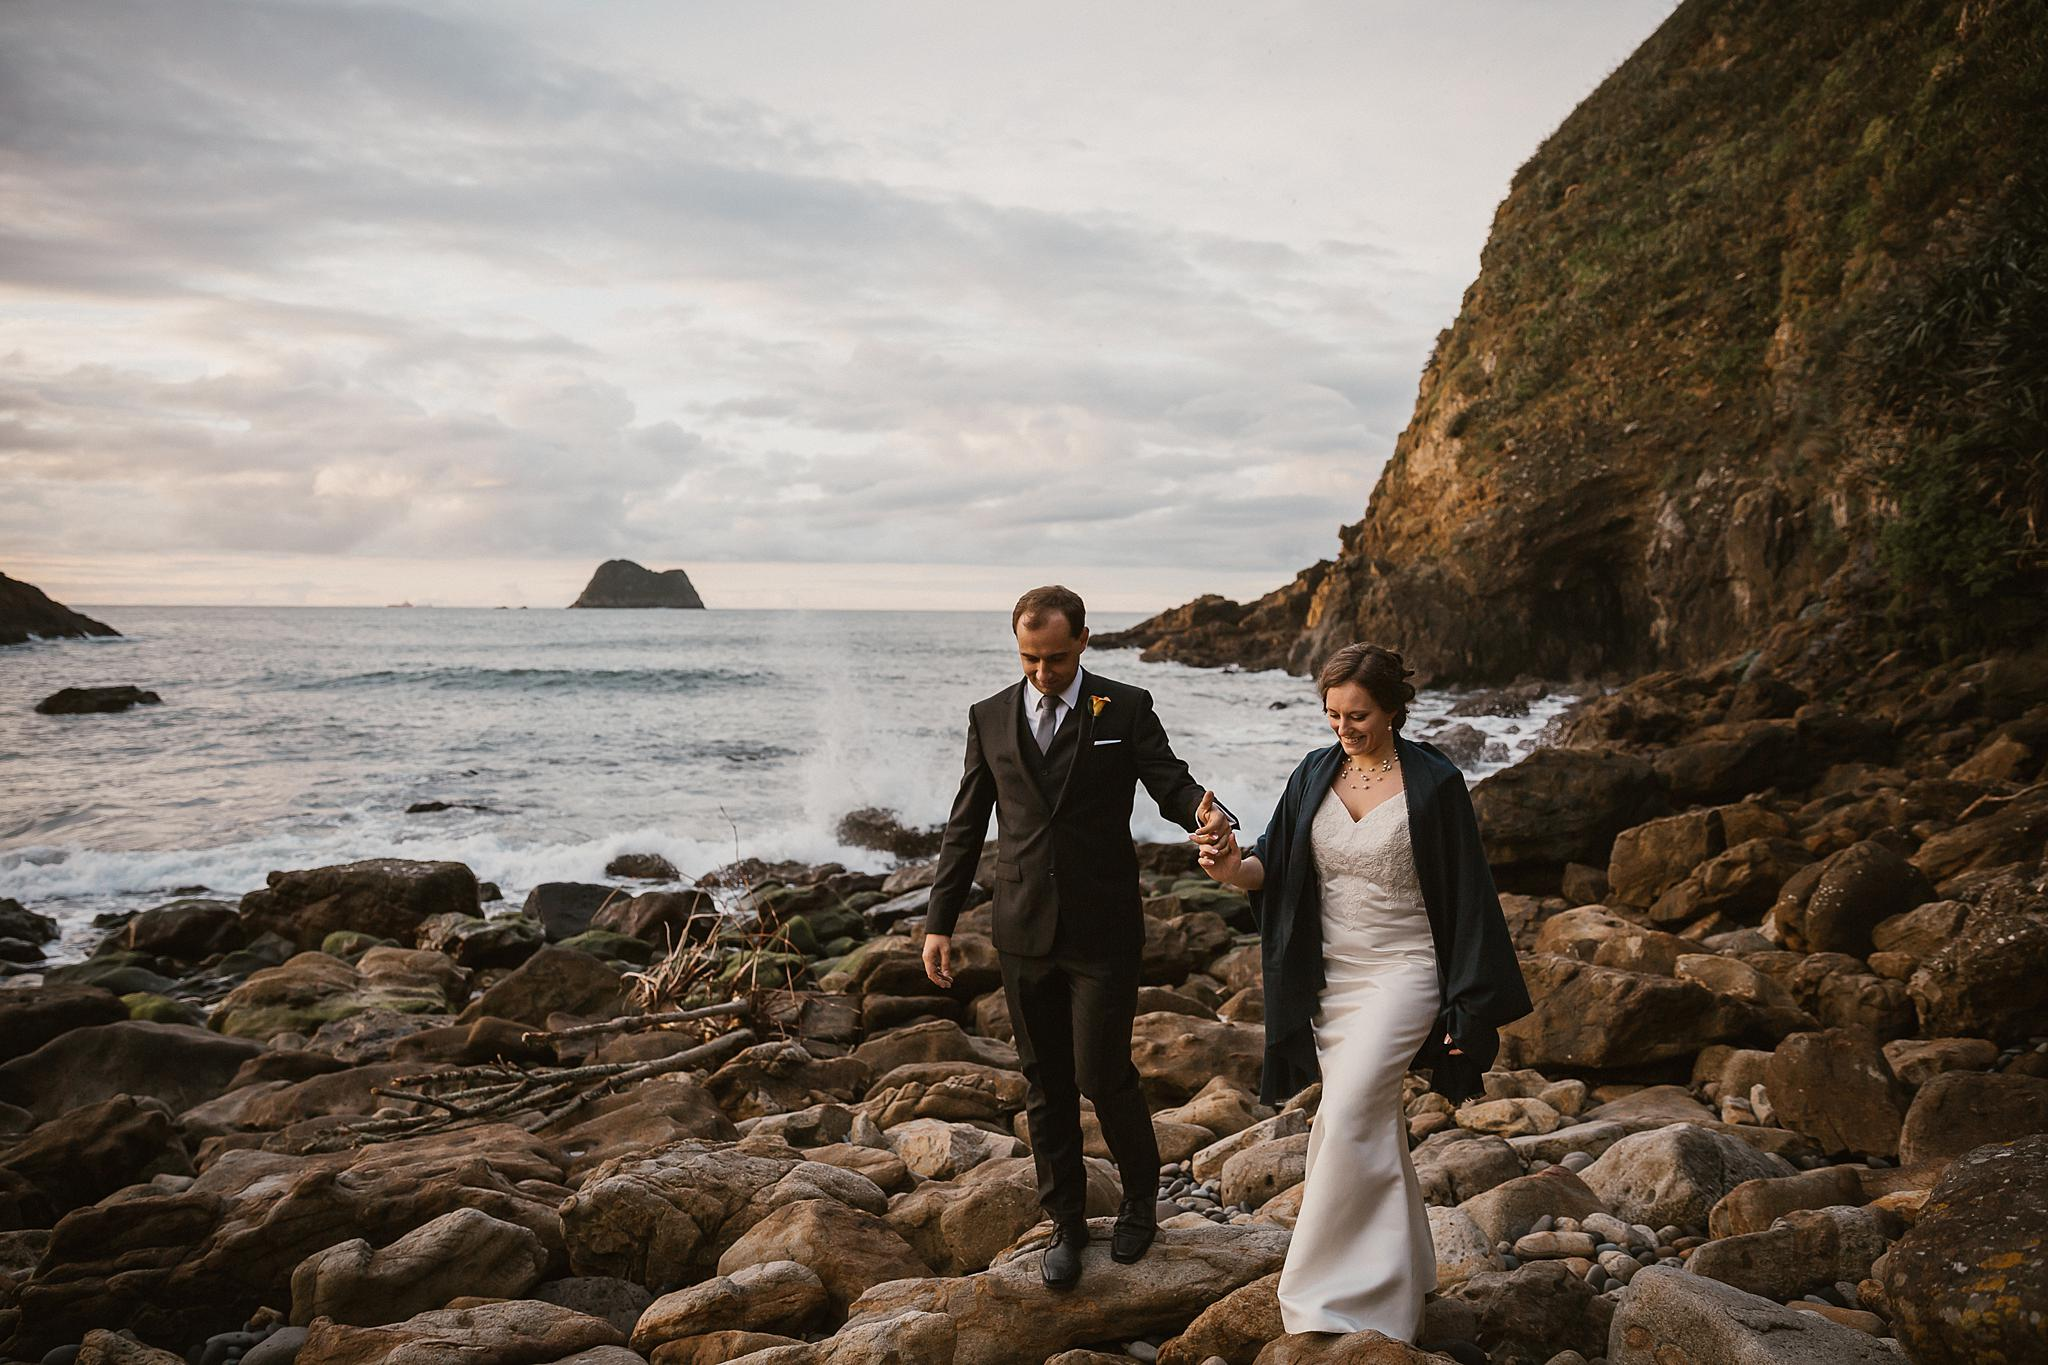 German couple eloped to New Zeland